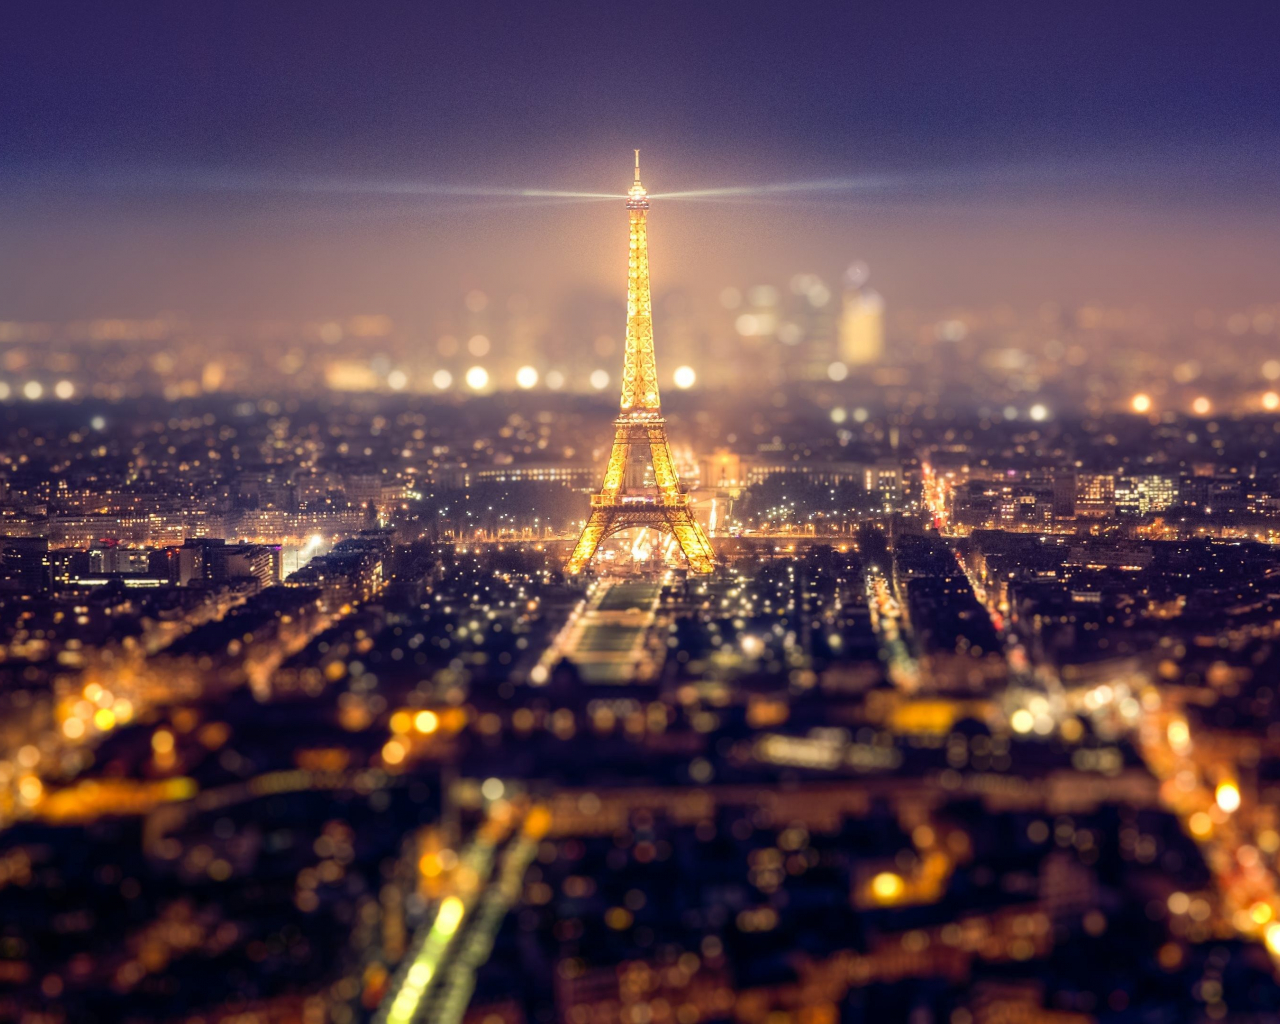 Free Download Beautiful Paris Night Wallpaper Best Wallpapers On Your Phone 3840x2160 For Your Desktop Mobile Tablet Explore 25 Paris Night Wallpaper Paris Night Wallpaper Paris At Night Wallpaper Paris Wallpapers